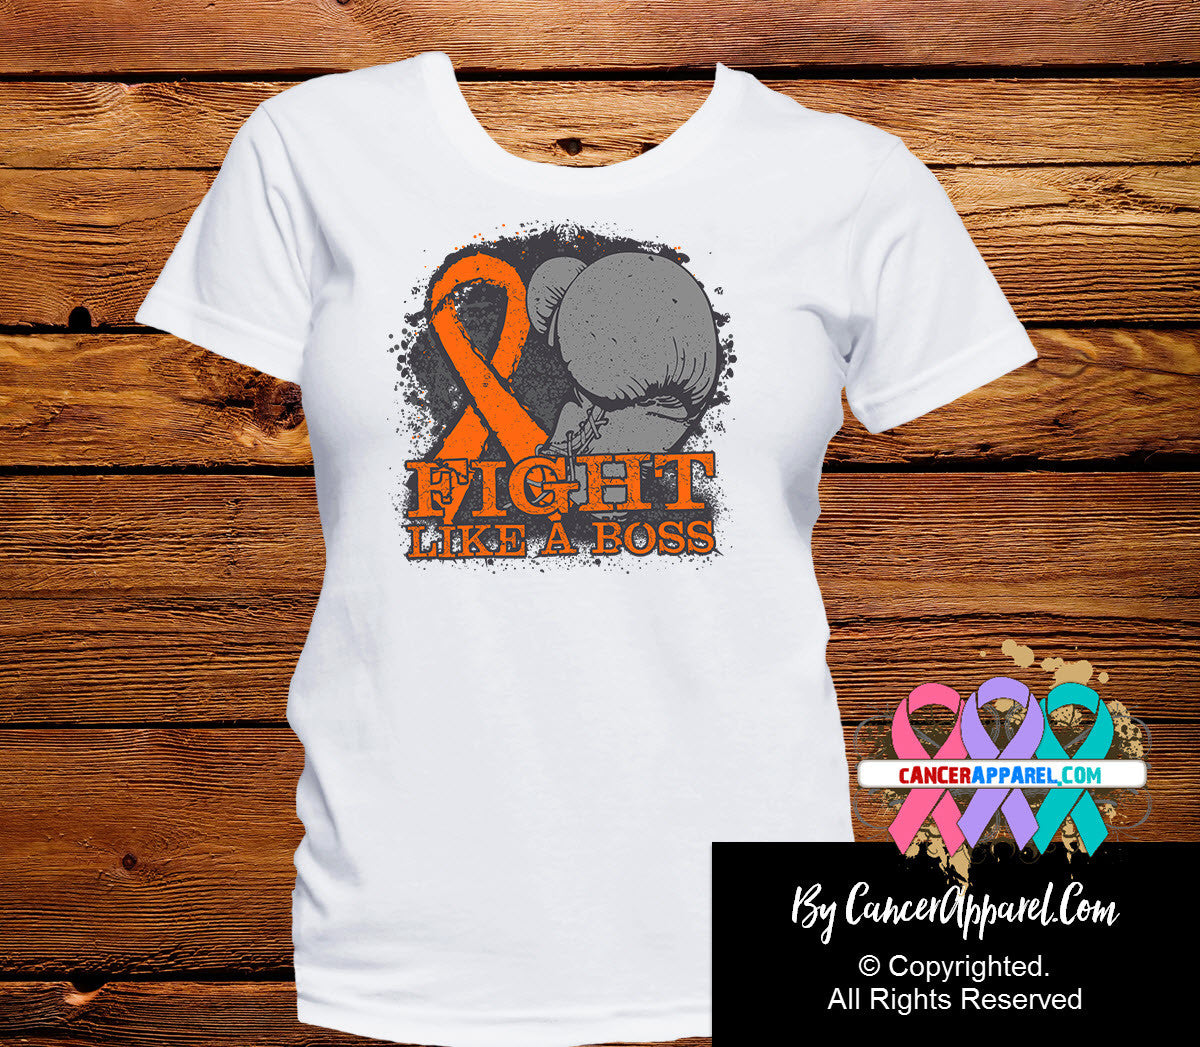 Kidney Cancer Fight Like a Boss Shirts